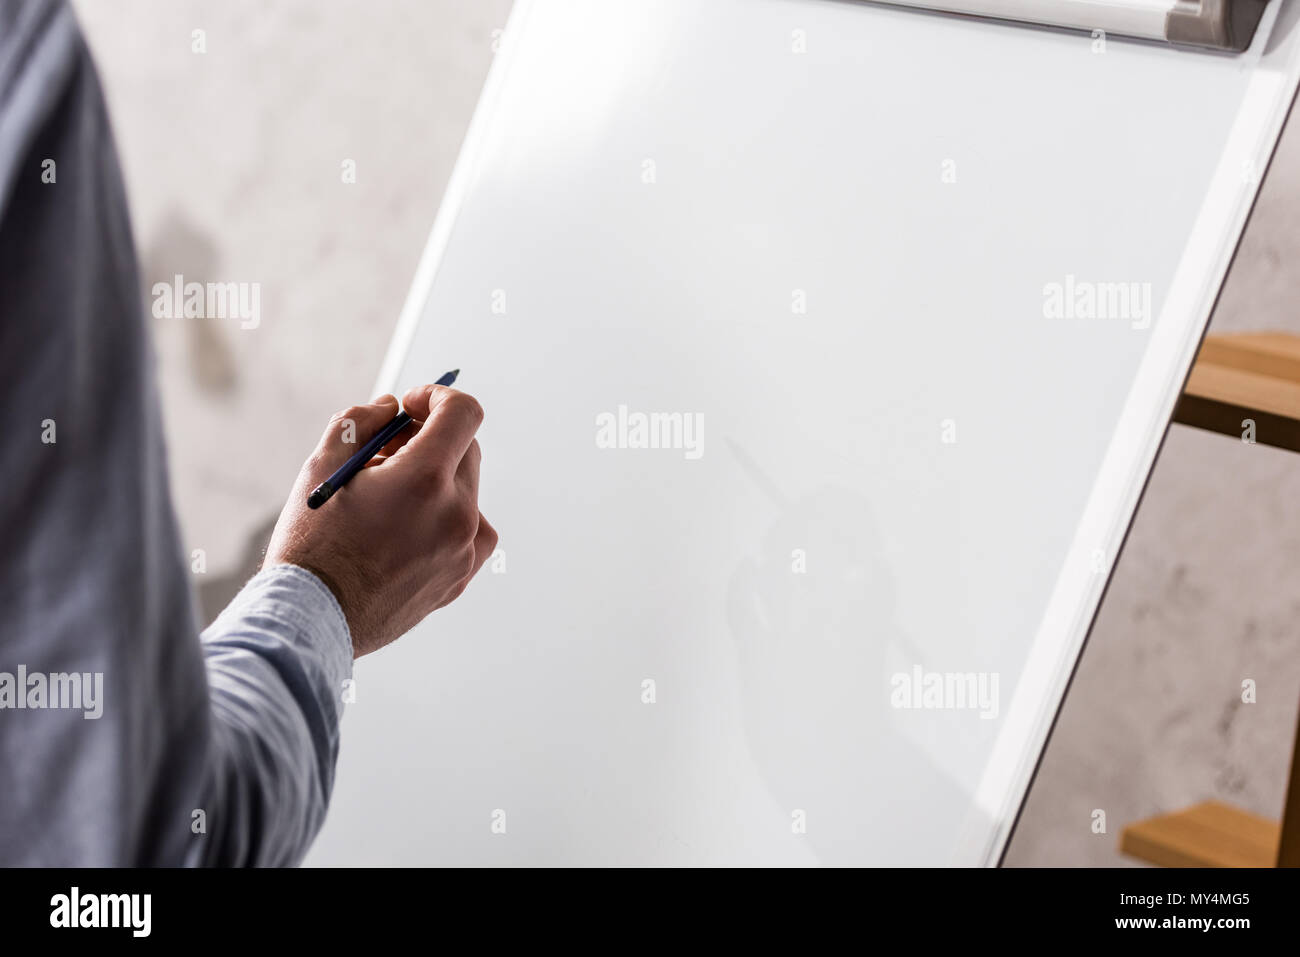 cropped image of businessman writing something on flipchart - Stock Image